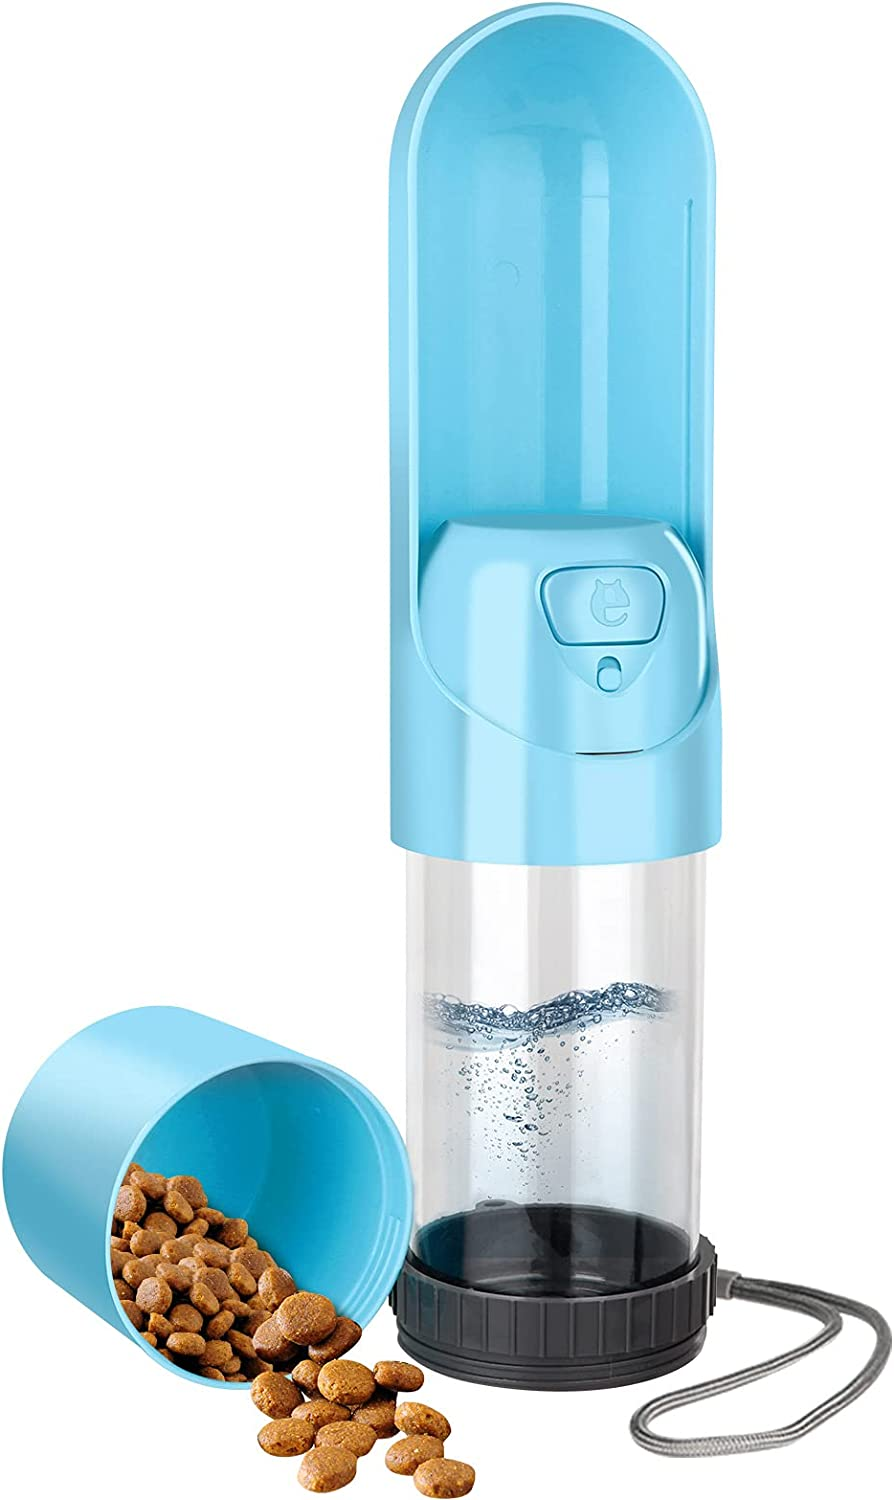 Portable Dog Water Bottle: Leak-Proof Cat Travel Water Dispenser, can Be Filled with Both Water and Food, Suitable for Kitty and Puppy Outdoor Walking, Hiking and Traveling (Blue)